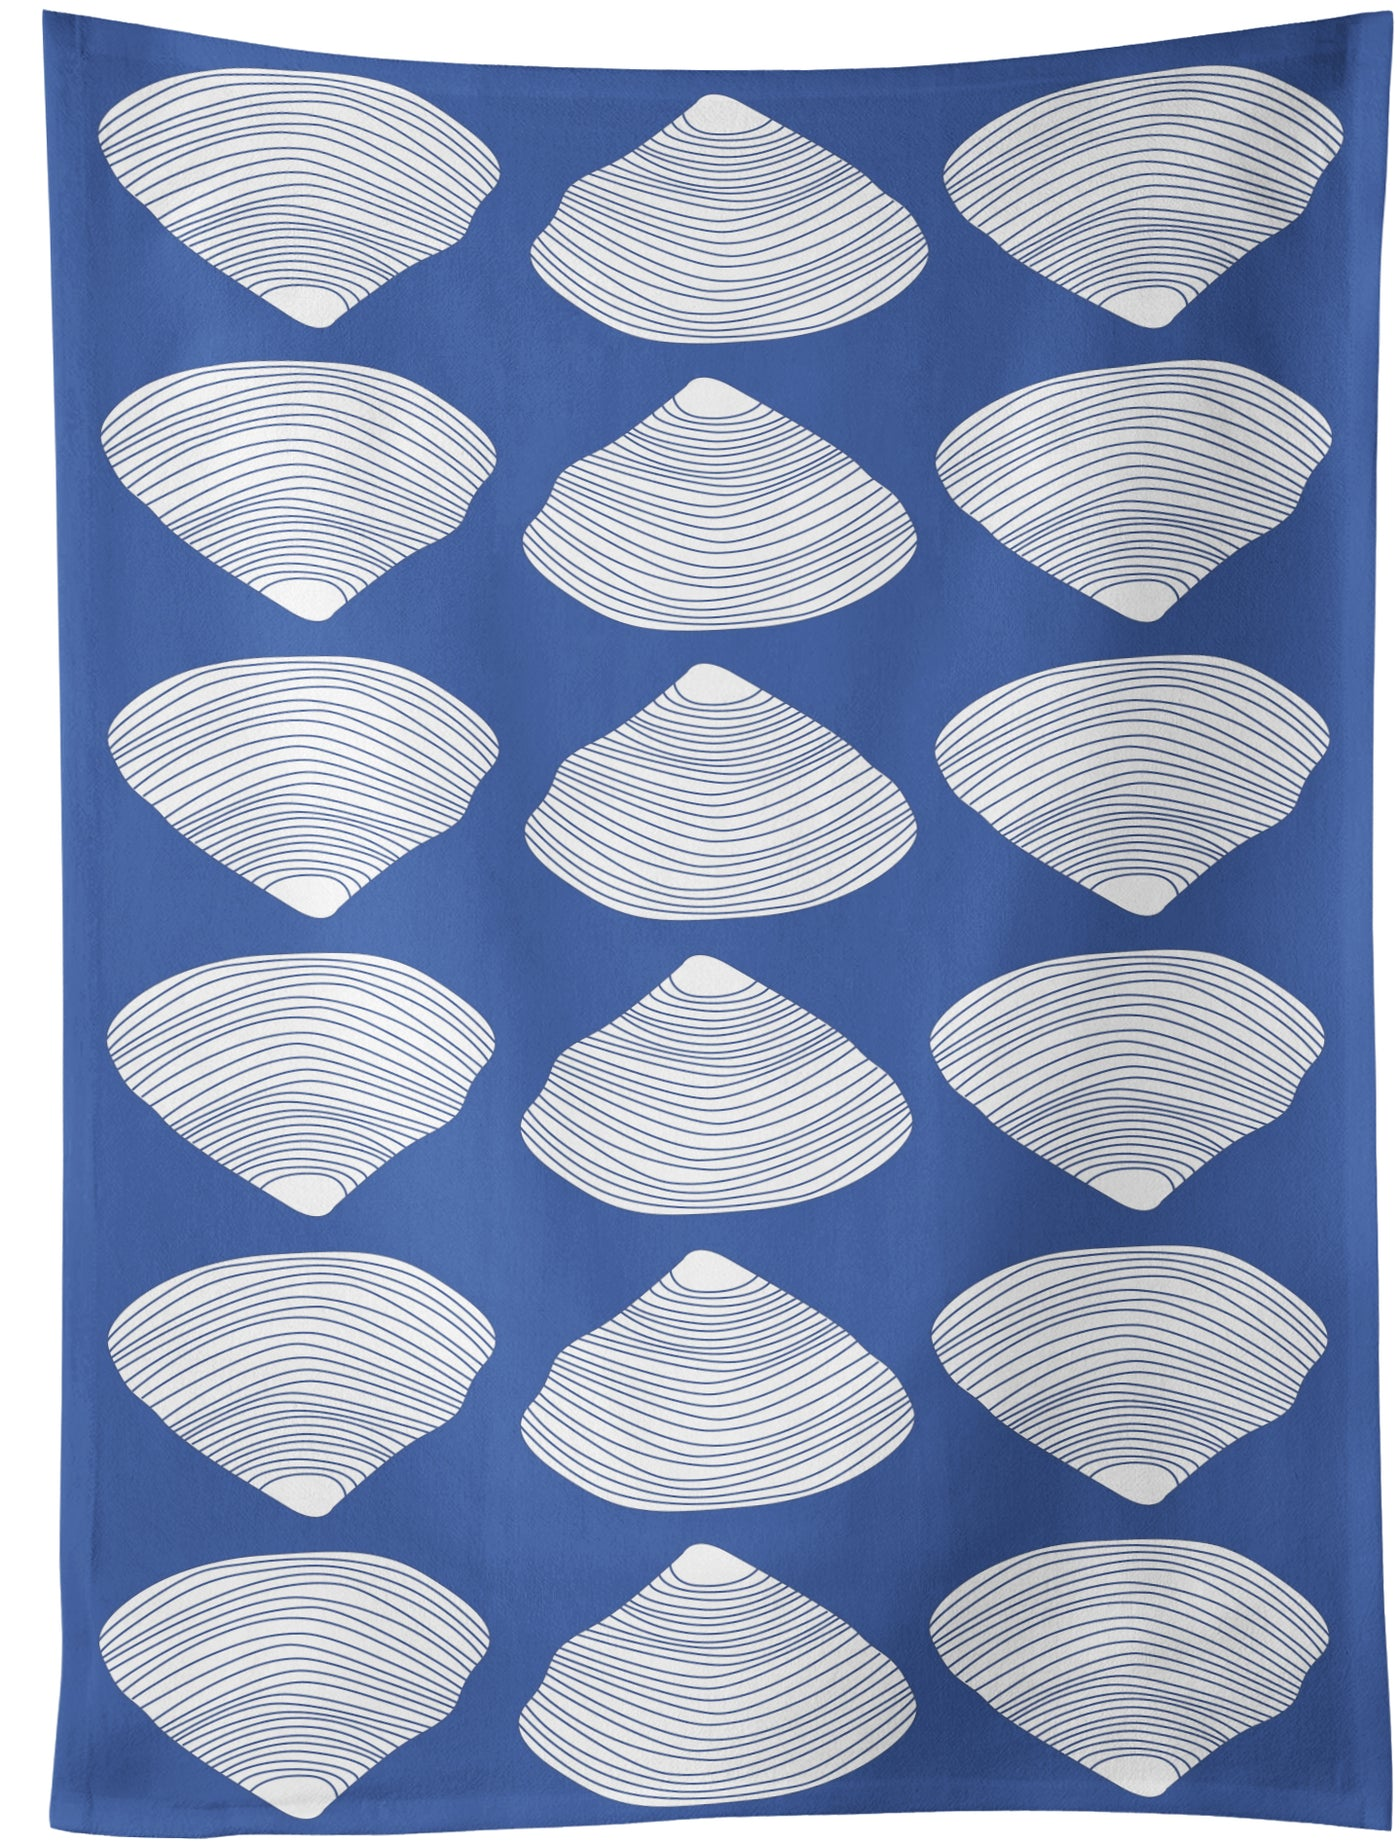 Clamshell Tea Towel